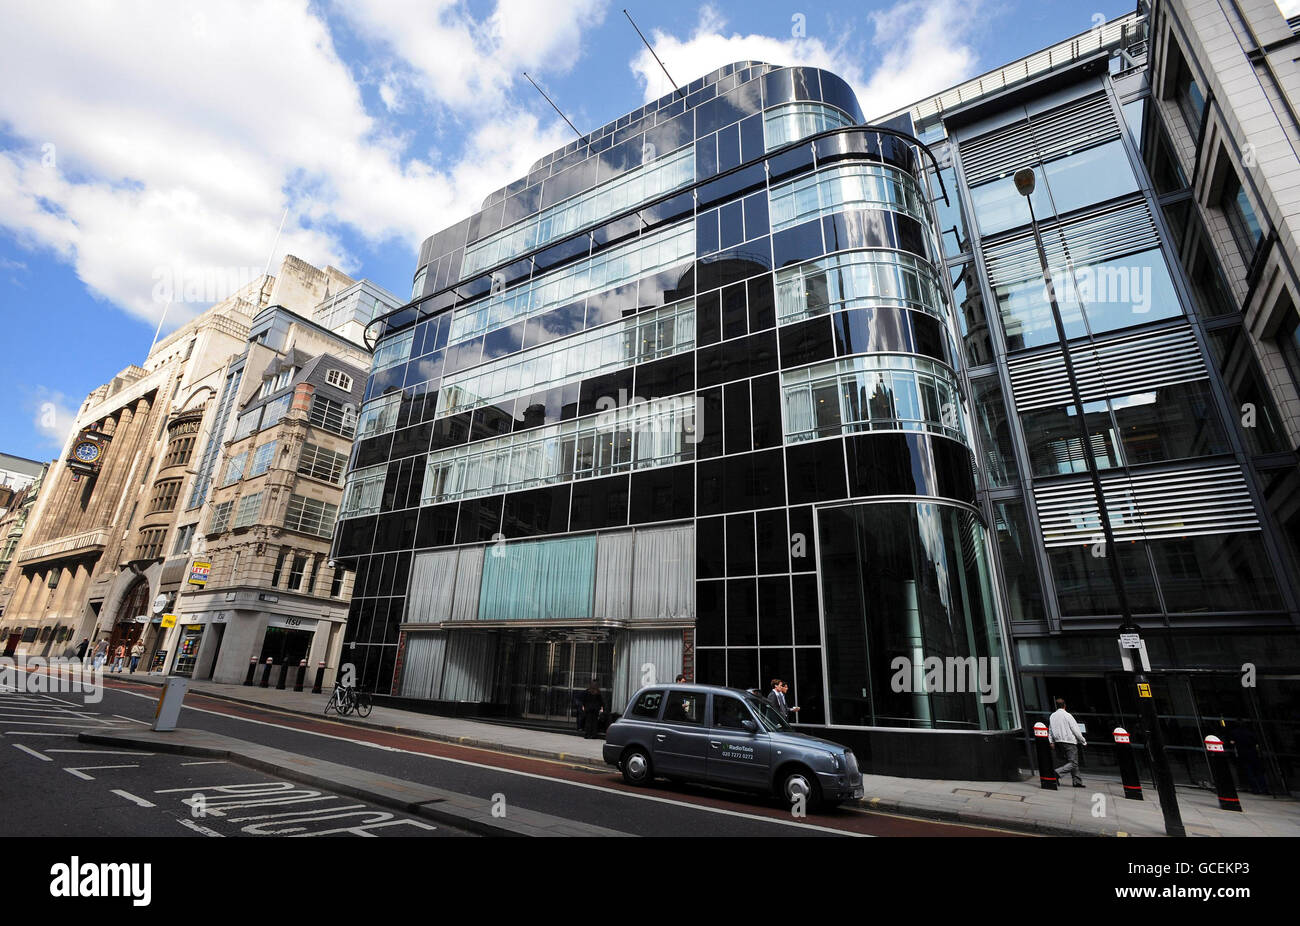 Buildings and Landmarks - The Daily Express Offices - Fleet Street - London - Stock Image